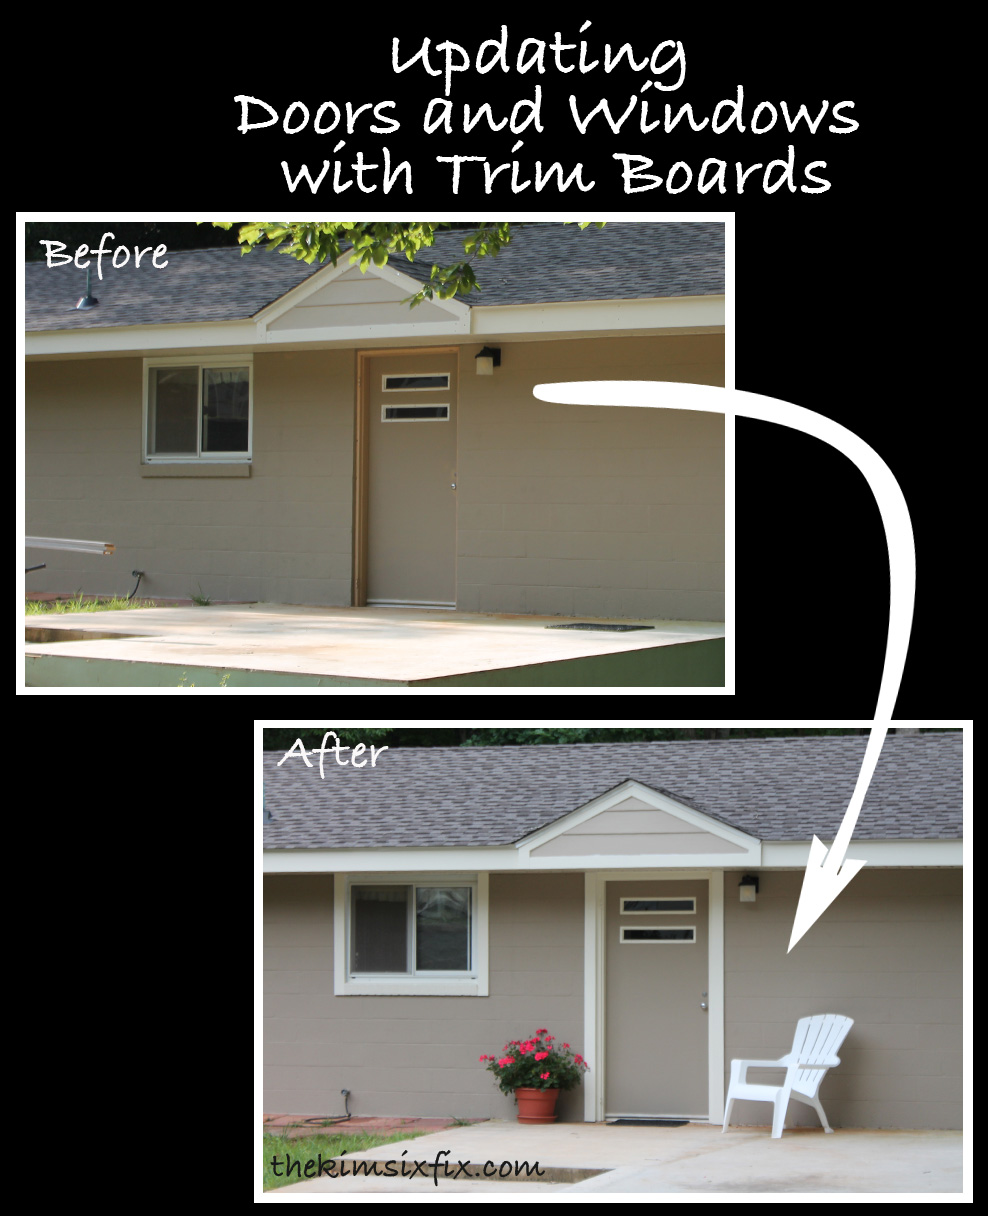 How to Use Trim to Update Exterior Doors and WIndows - The Kim Six Fix